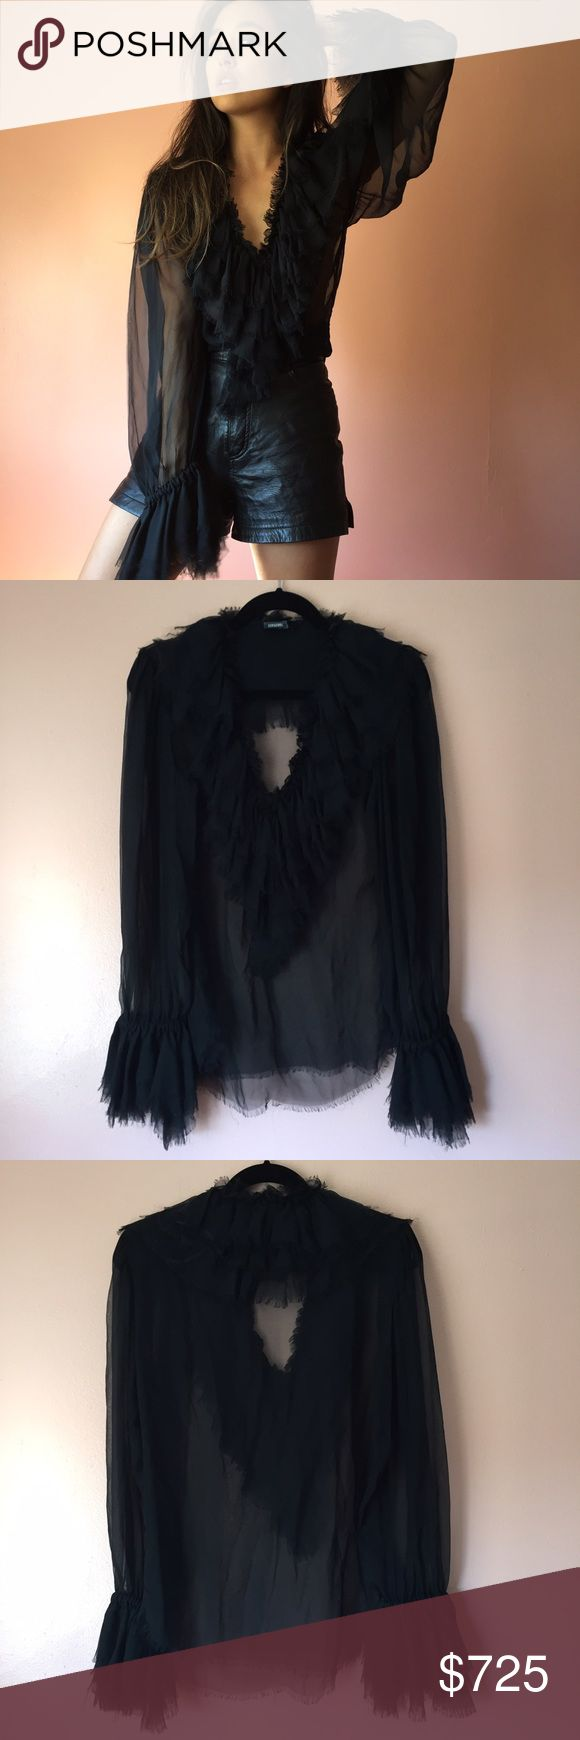 Moschino Couture Sheer Chiffon Blouse Thrill with frills in this gorgeous sheer blouse by Moschino Couture. Features a plunging neckline framed by layers of sheer raw hem ruffles, long sleeves with similar cuffs to collar and long body. Wear with black leather and a perfect cat eye. MSRP $2200. Fits one size. No marked size. No returns allowed. Please ask all questions before buying. IG: [at] jacqueline.pak #moschino #couture Moschino Tops Blouses